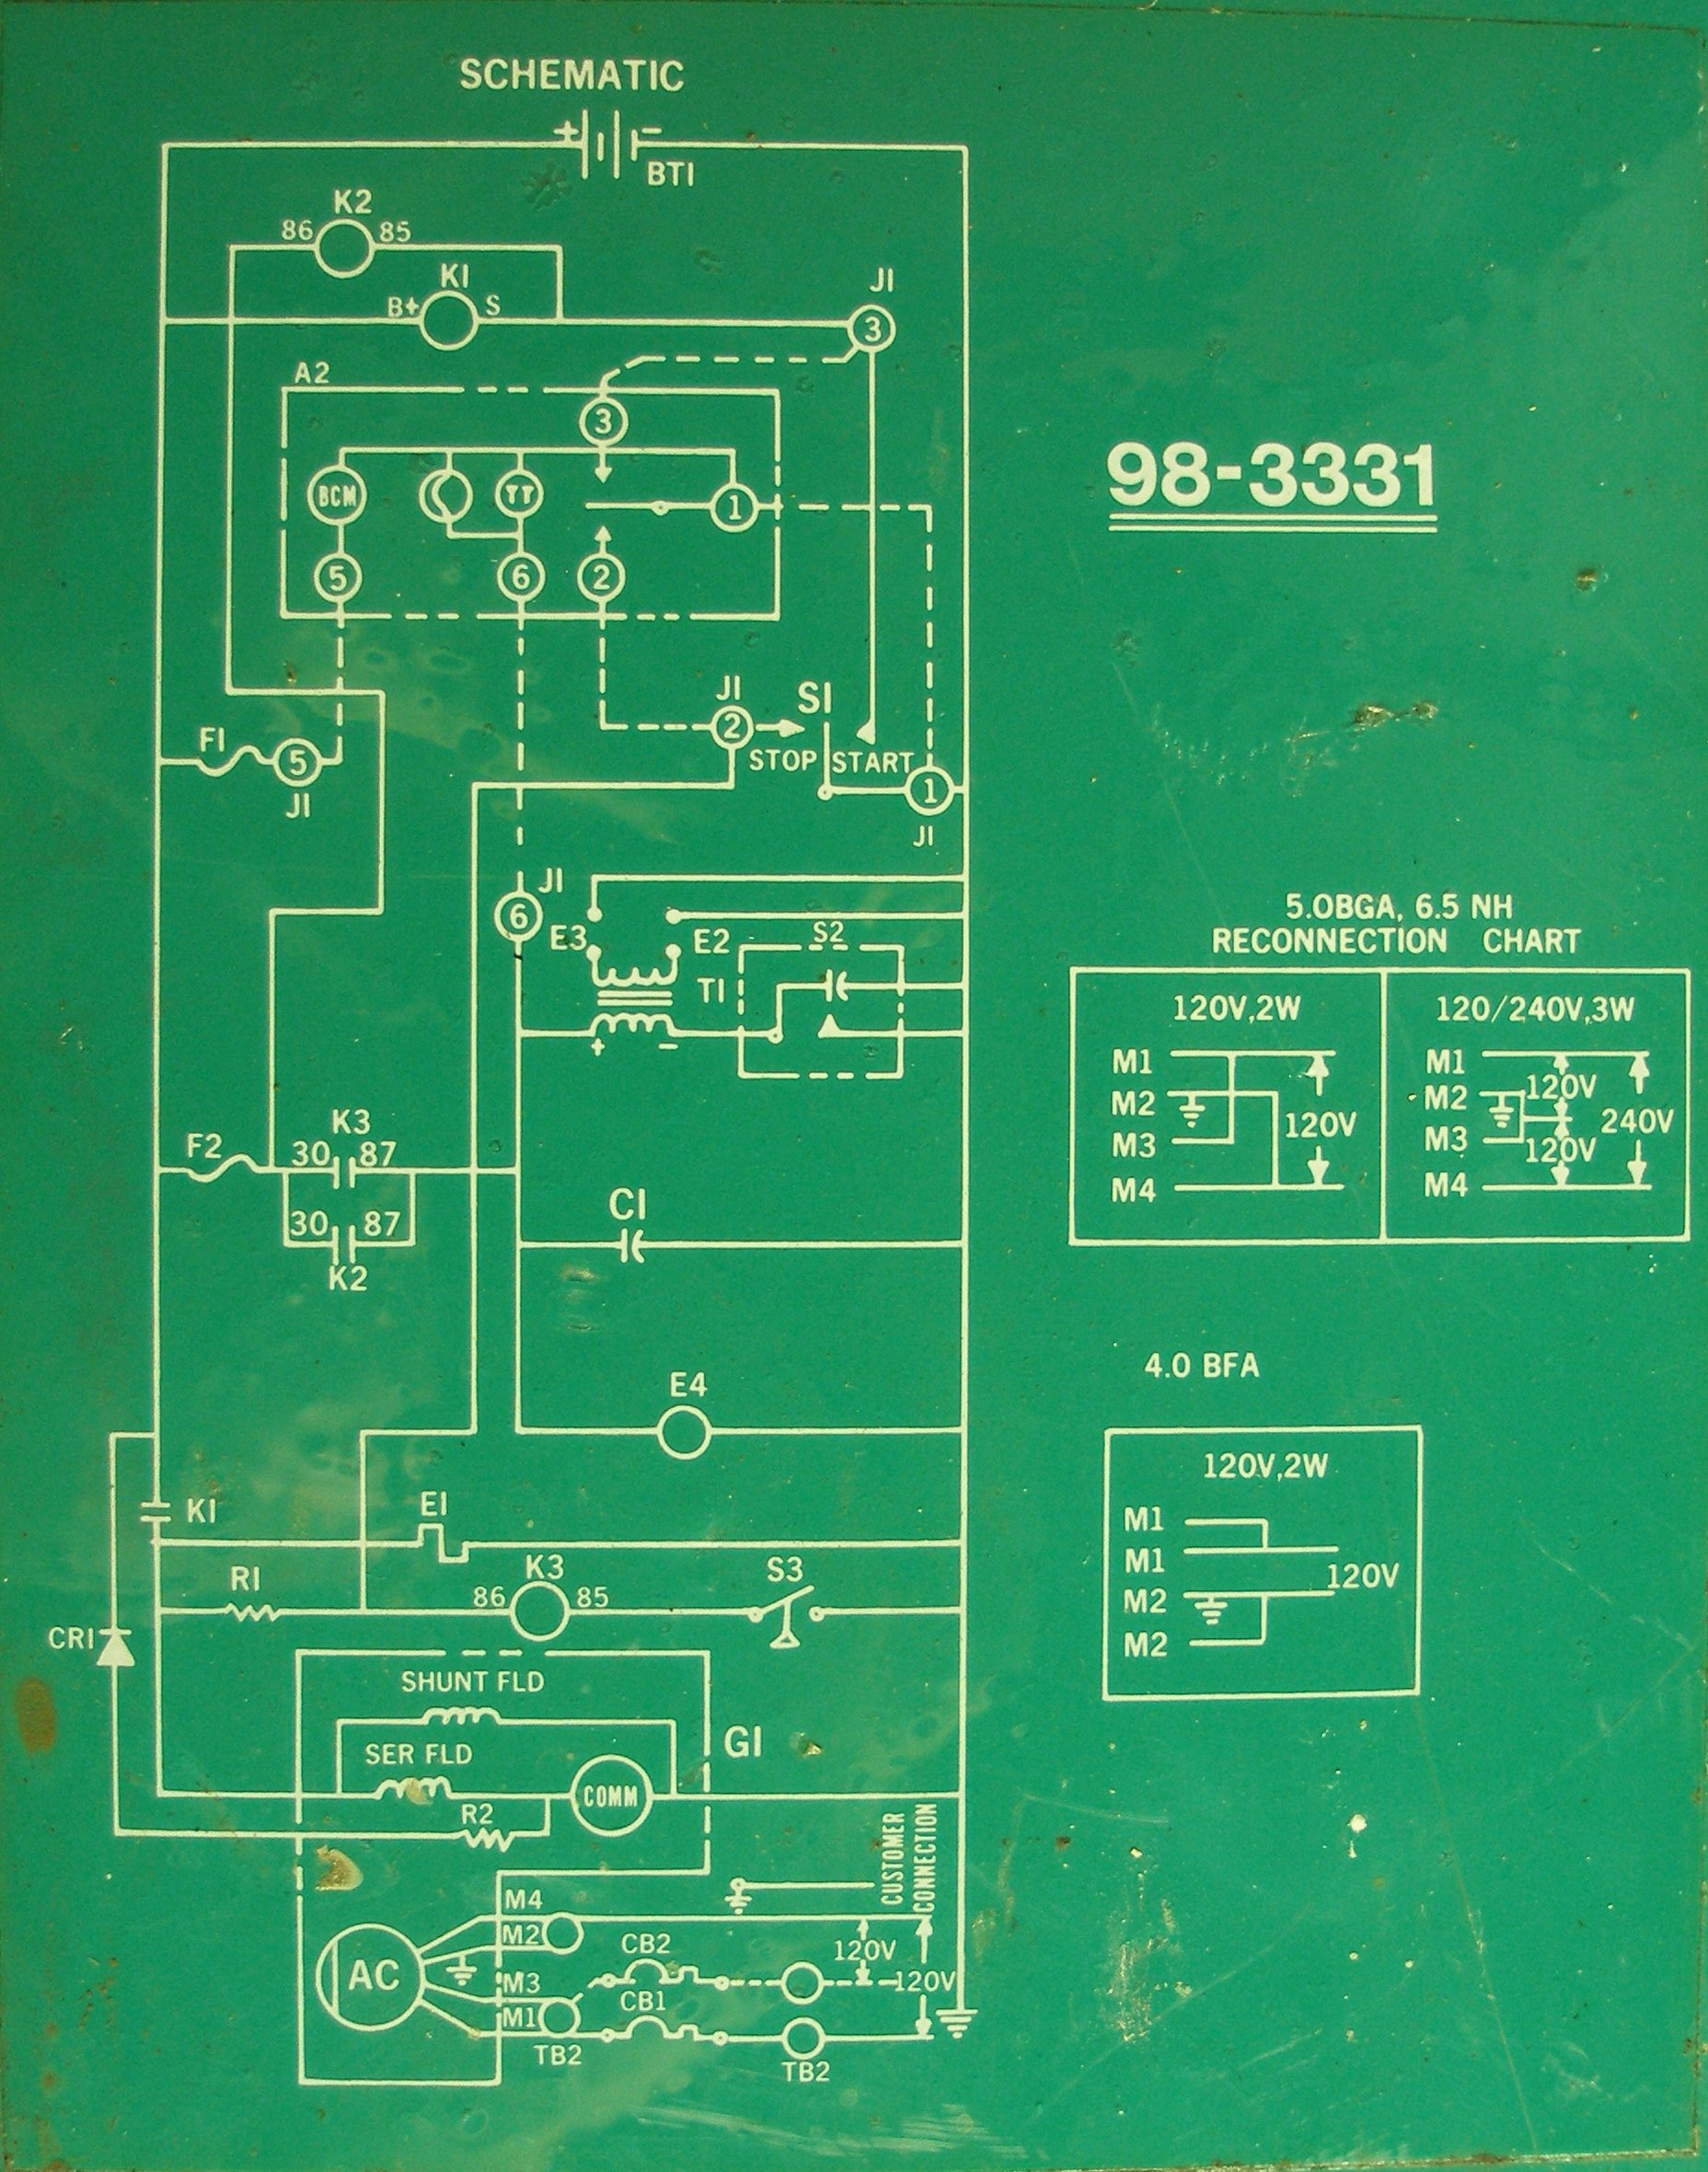 Onan Genset Wiring Diagram | Best Wiring Library - Onan 4.0 Rv Genset Wiring Diagram